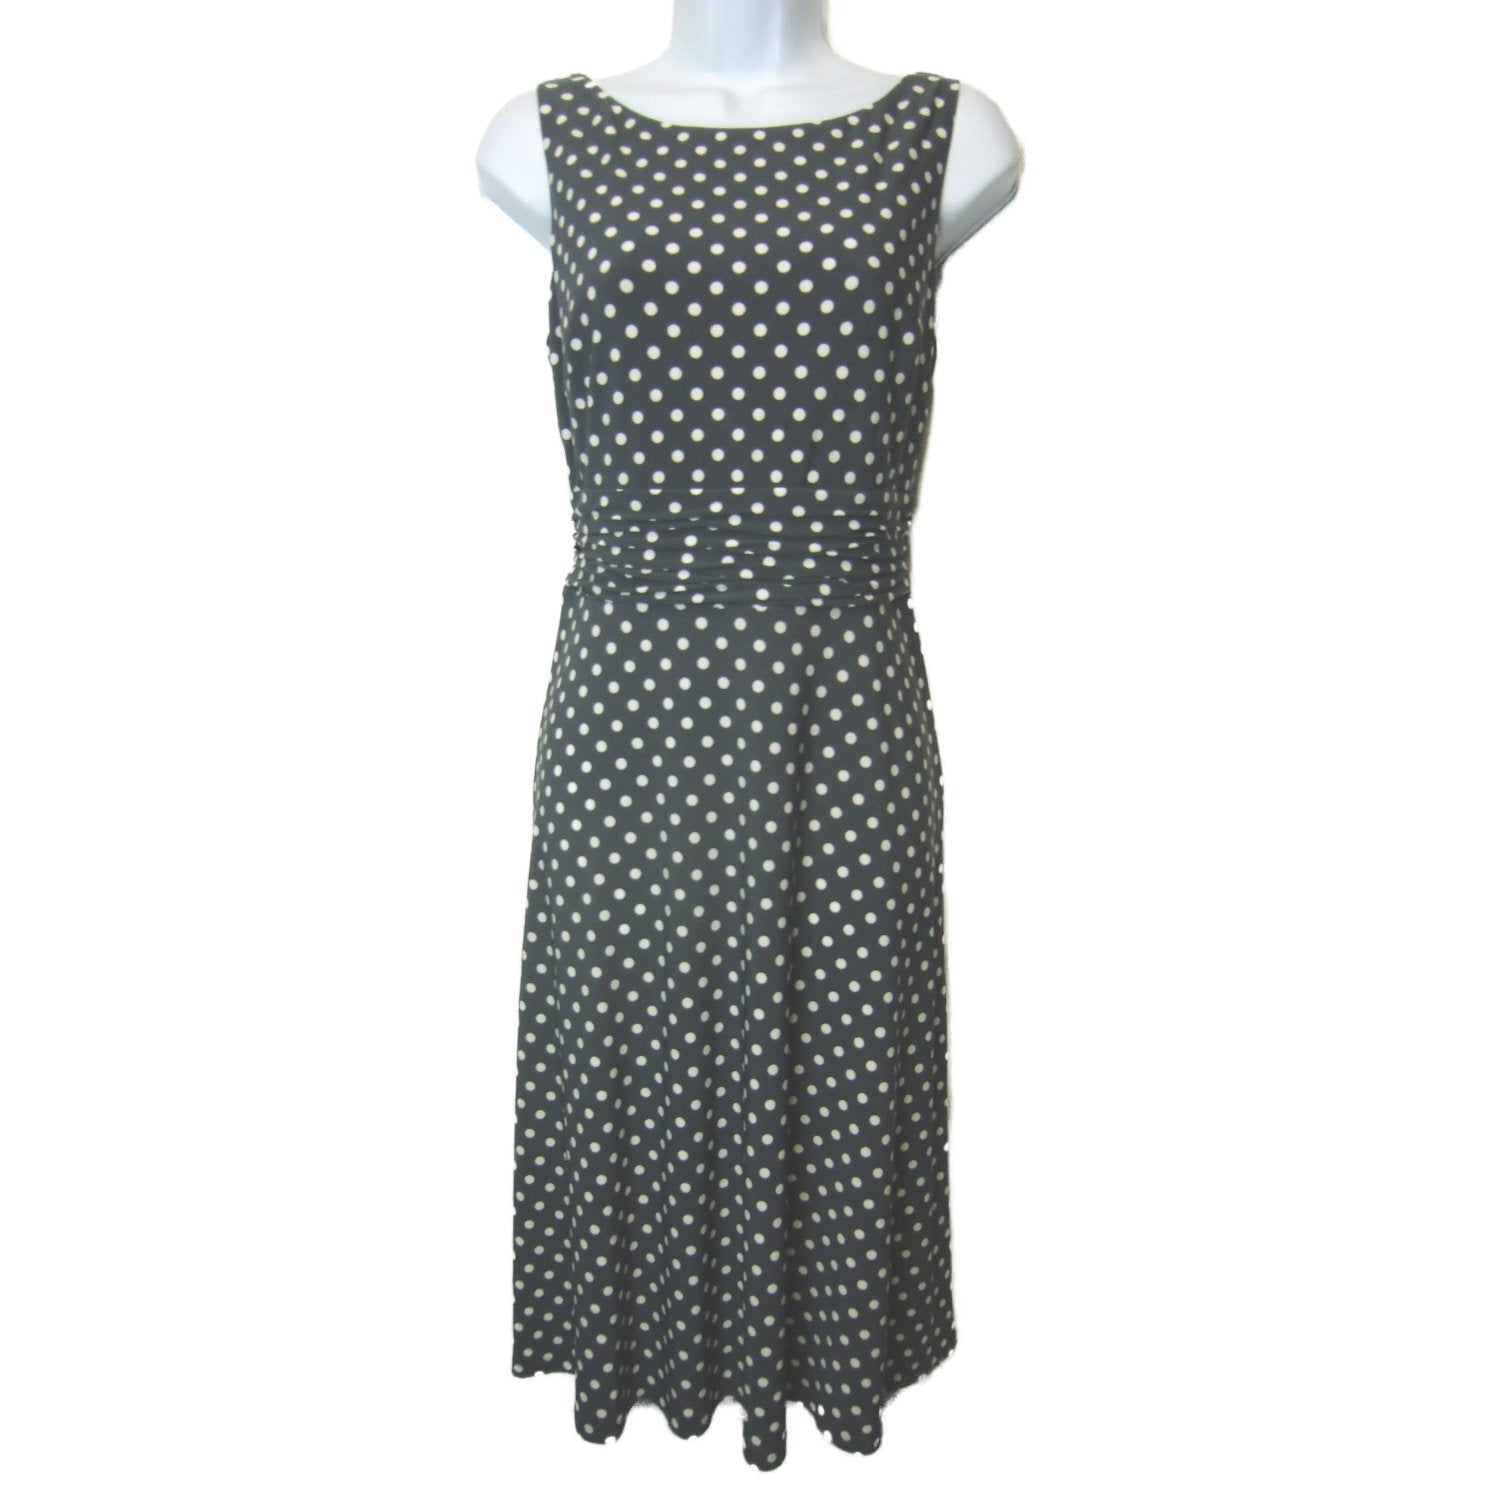 used ladies gray white polka dot dress